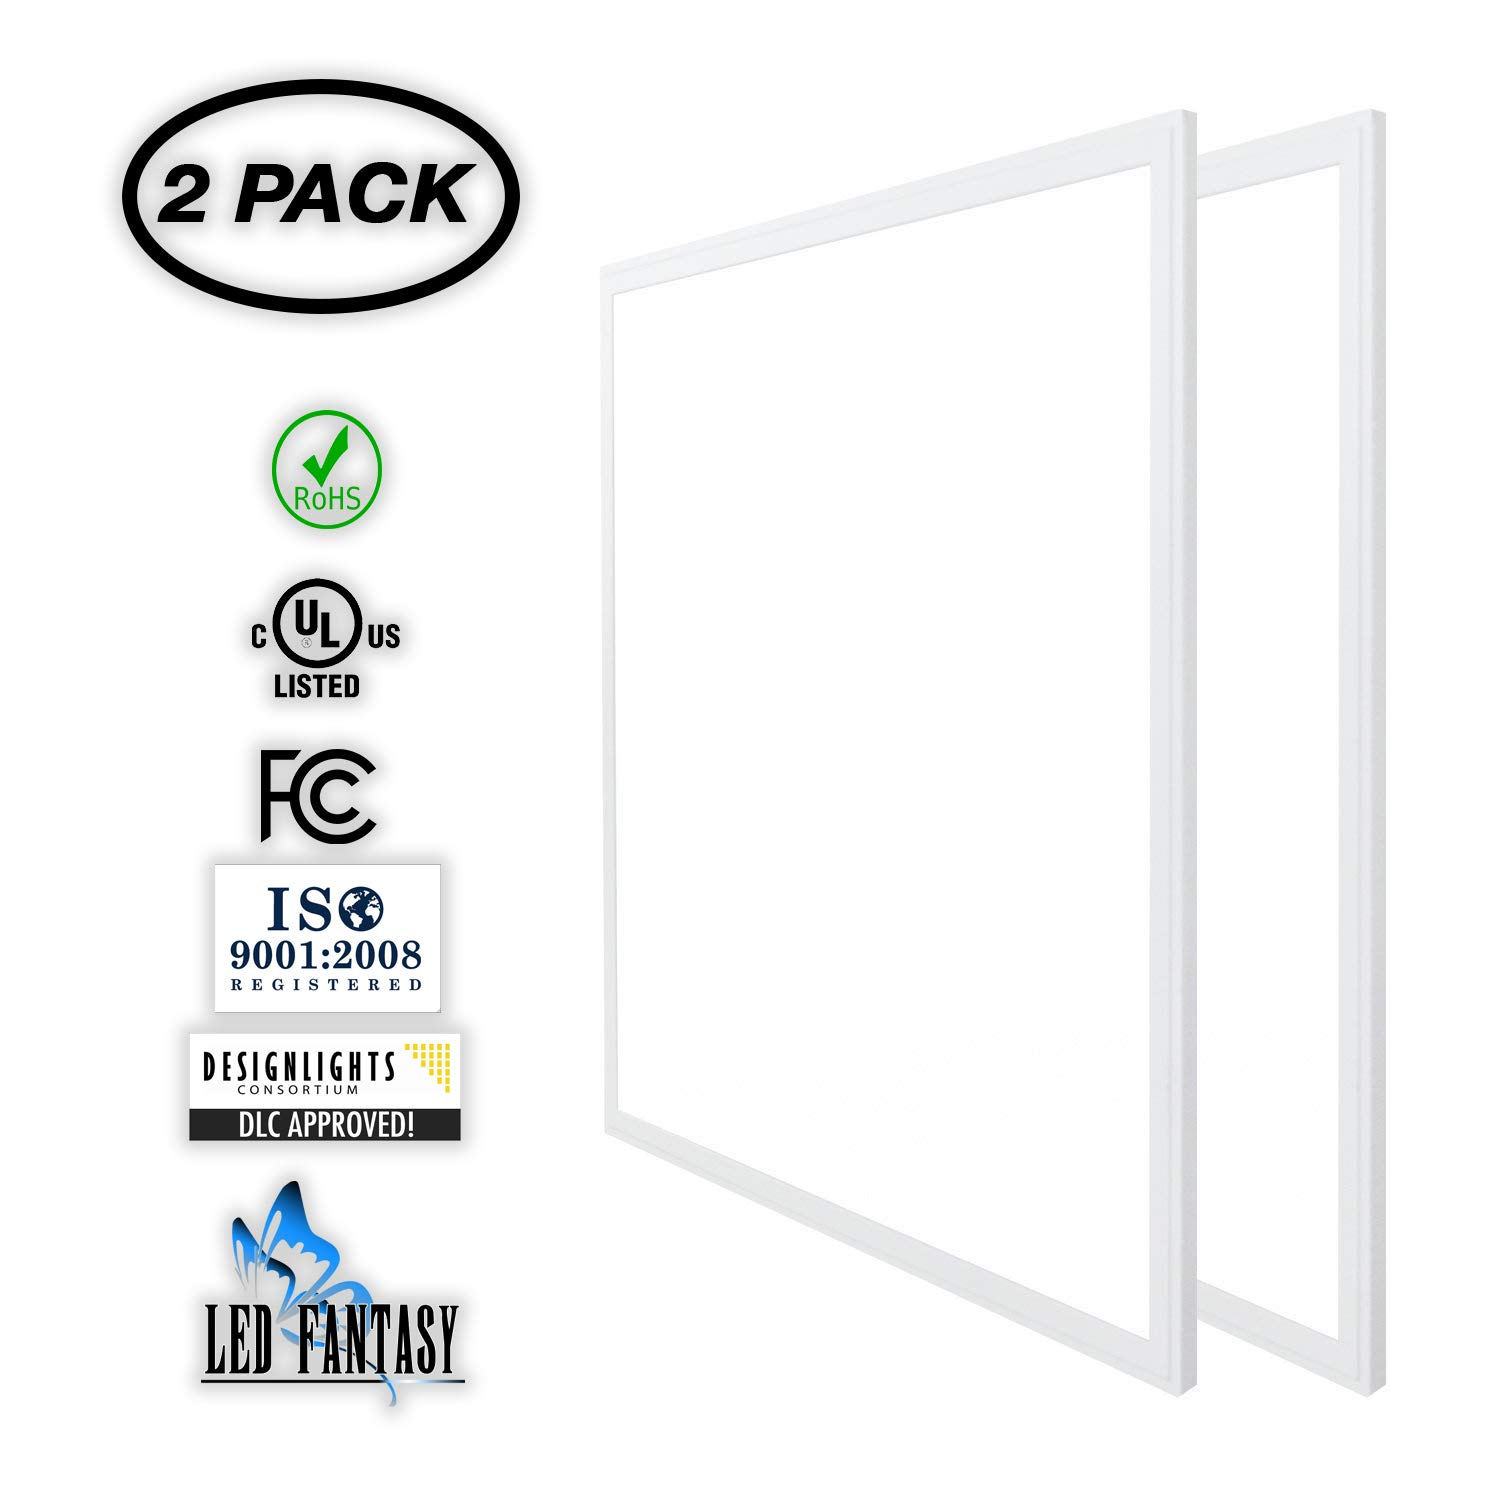 LED Fantasy 2x2 FT LED Panel Dimmable 0-10V, 40W (120W Equivalent), 5000K Daylight White,DLC & UL 2 Pack